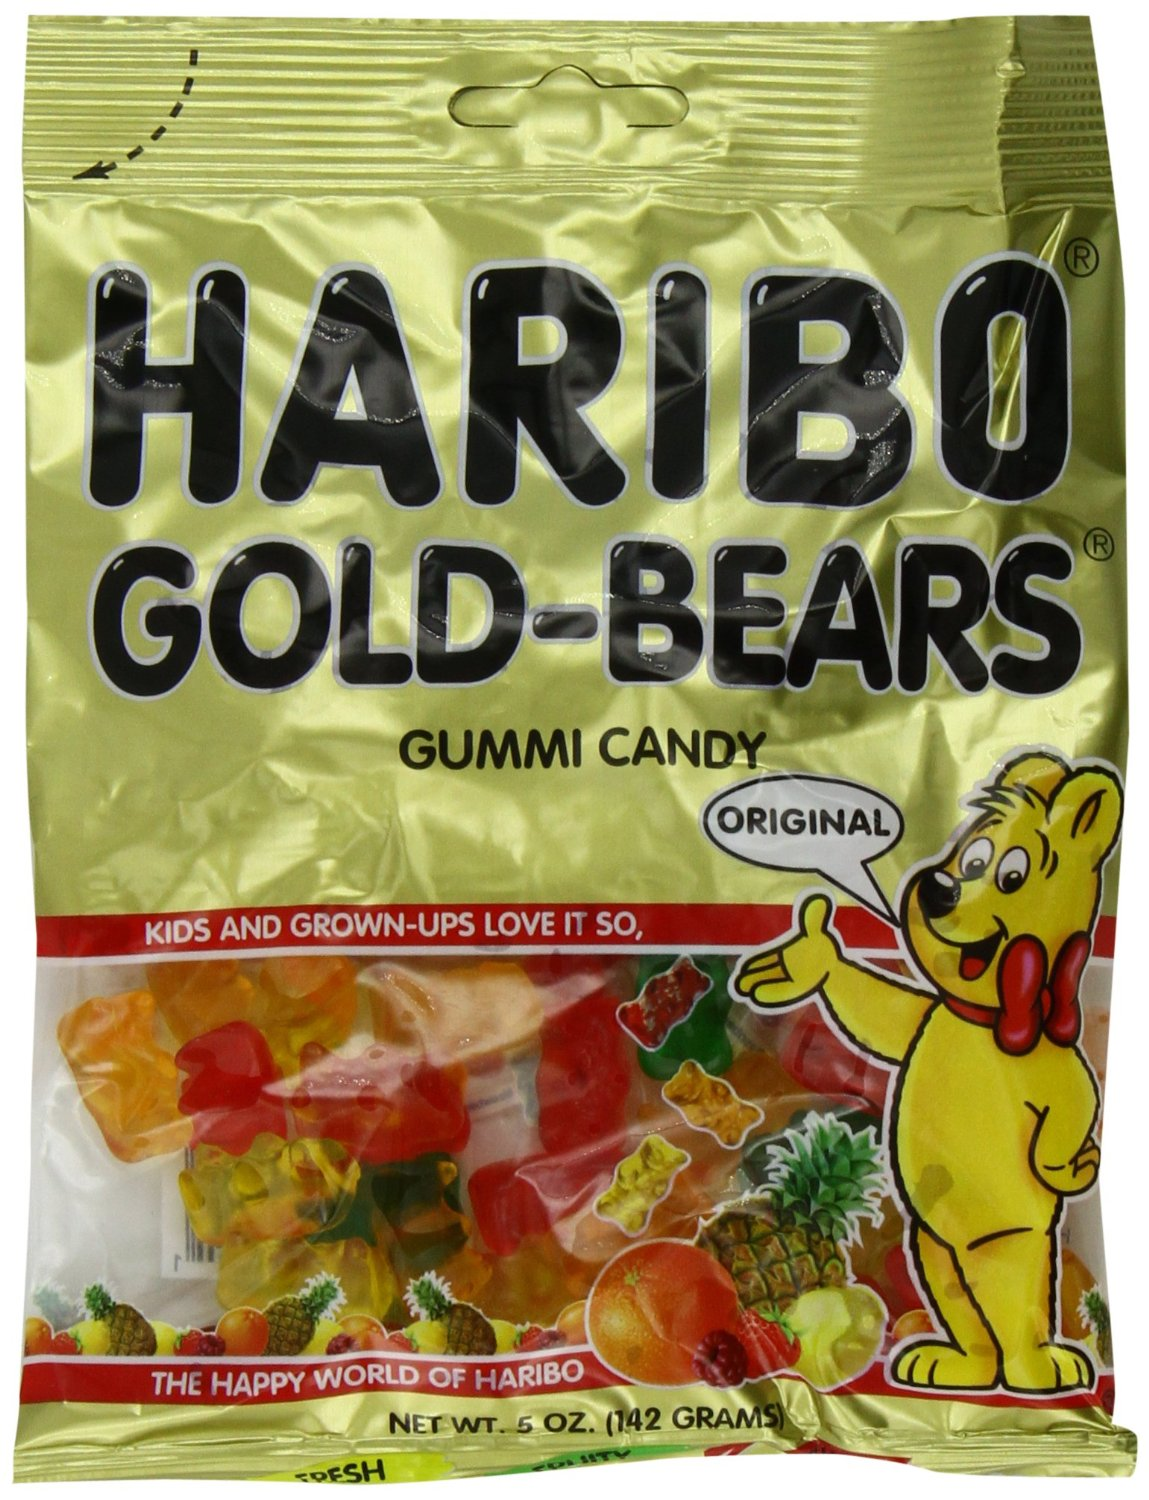 Haribo Gummi Candy Original Gold Bears 5 Ounce Bags Pack Of 12 Only 9 01 75 Per Bag Shipped